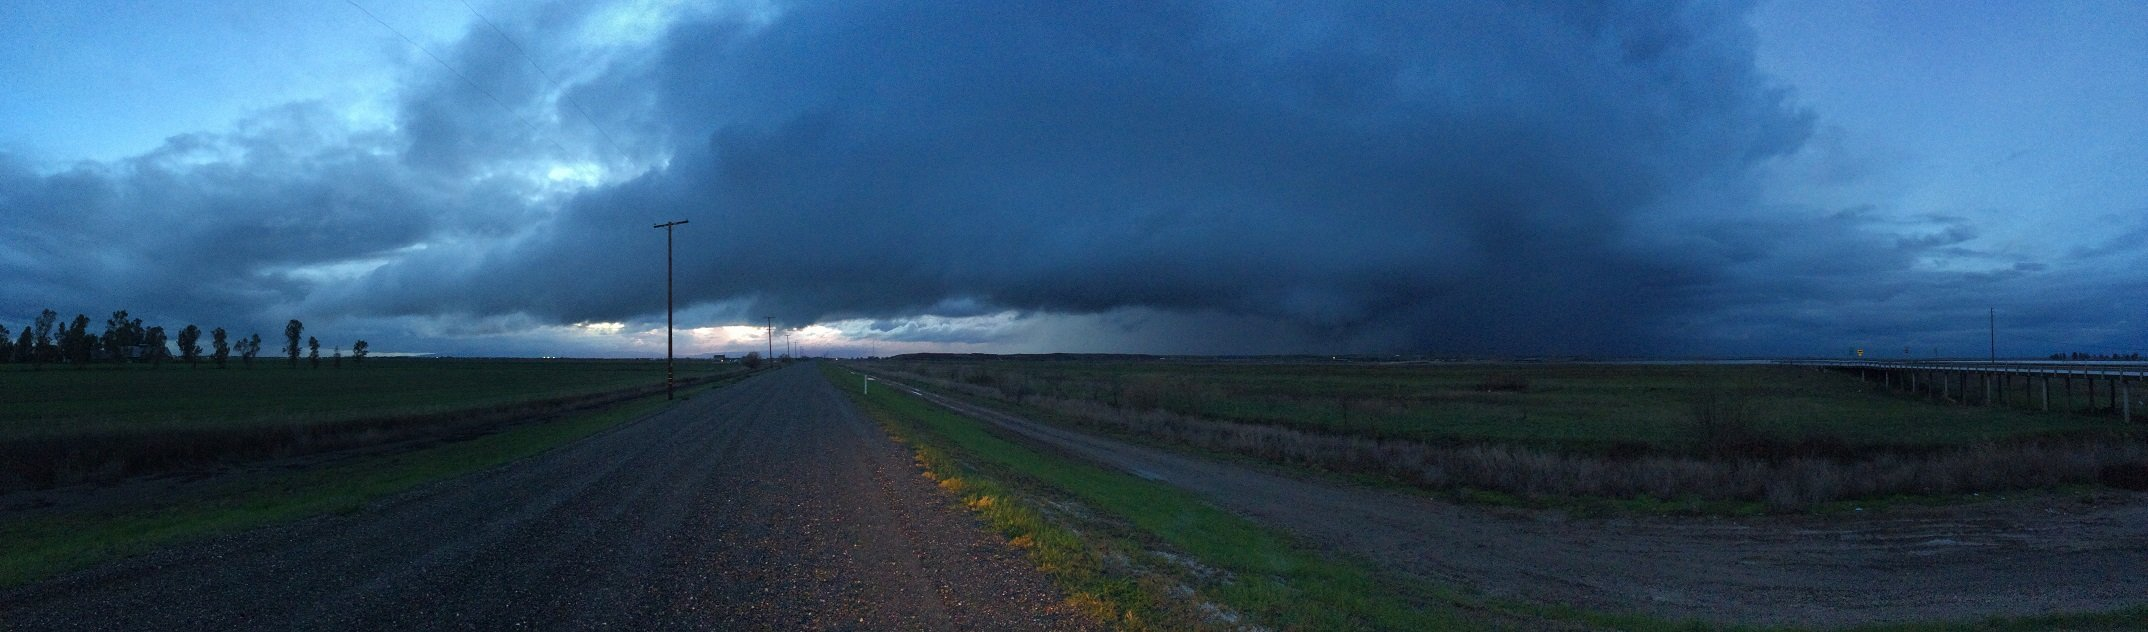 Mini-supercell that produced an EF-0 tornado near Woodland, CA. Photo by Weather West member c33f.